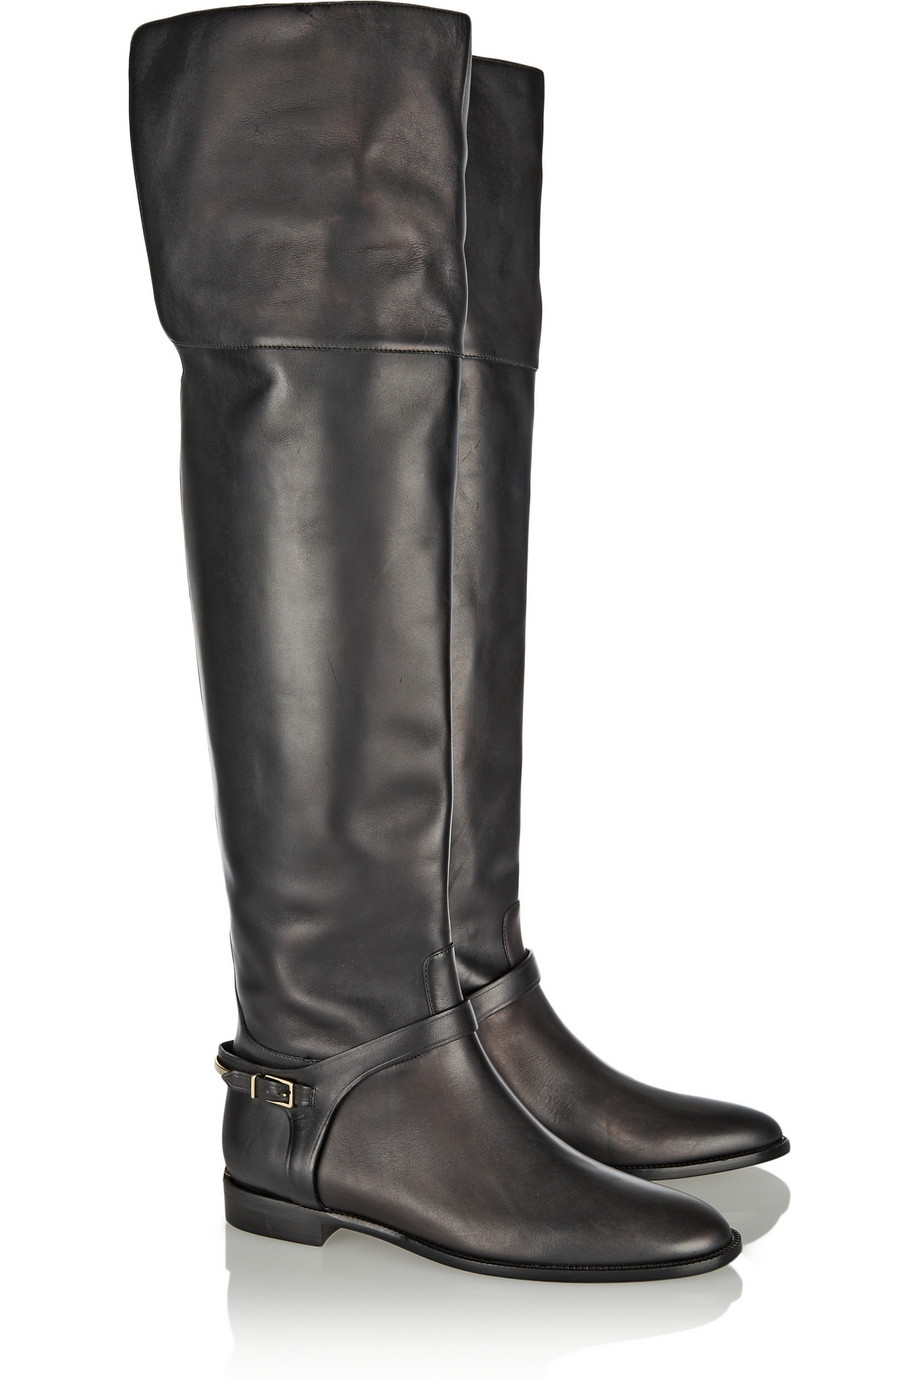 e4e602d4929 Lyst - Burberry Leather Over-The-Knee Boots in Black